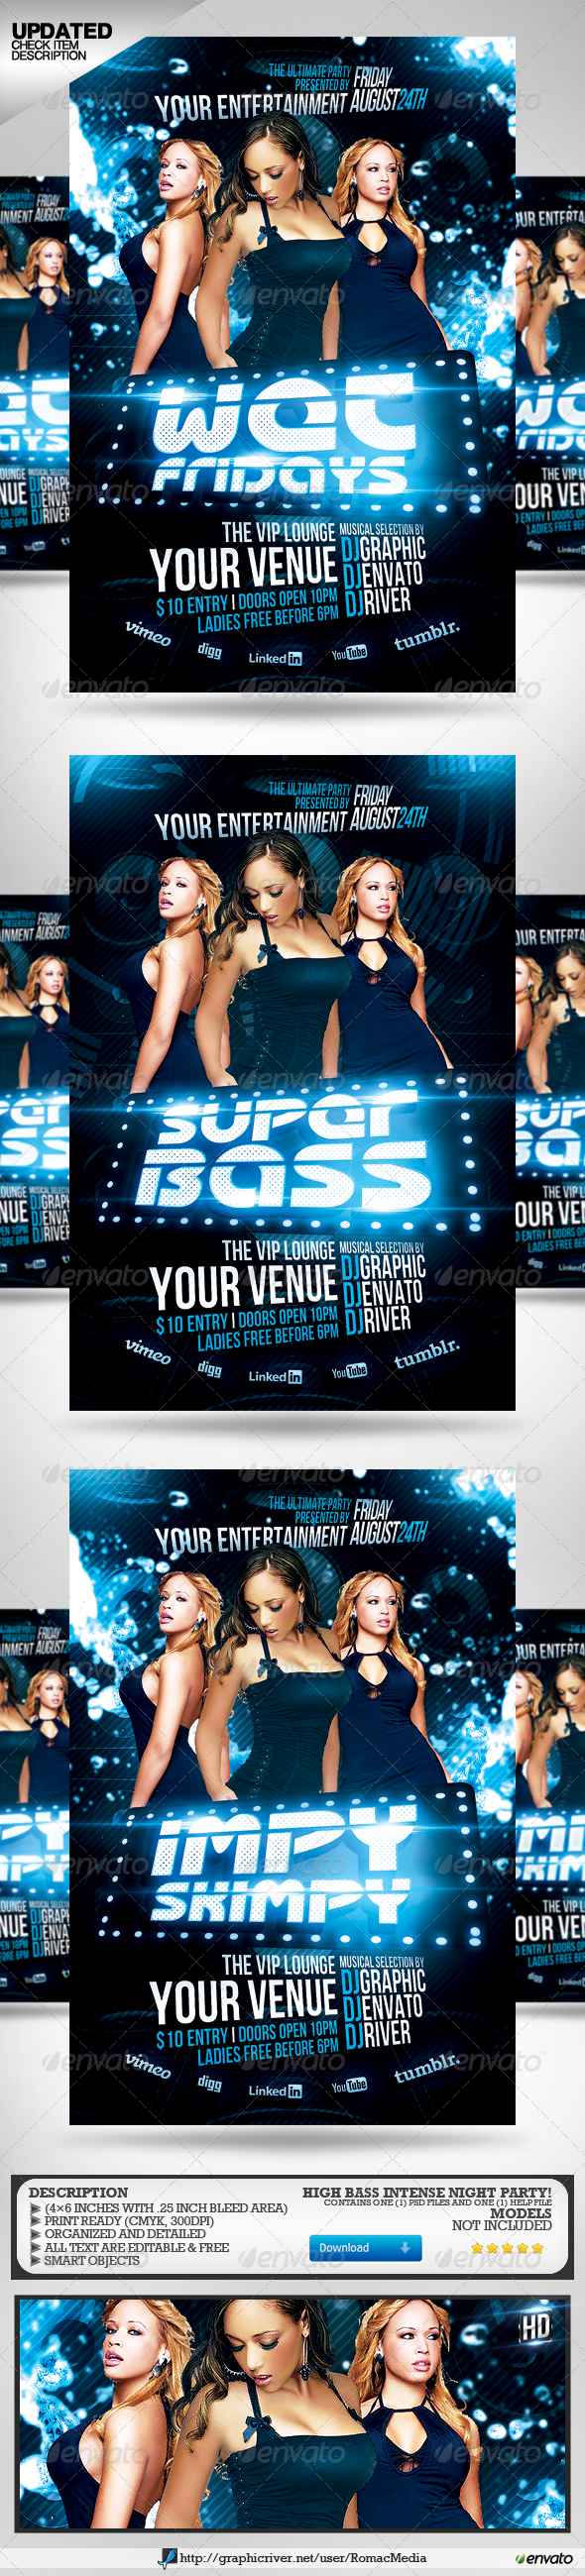 Super Bass Party Flyer - Clubs & Parties Events